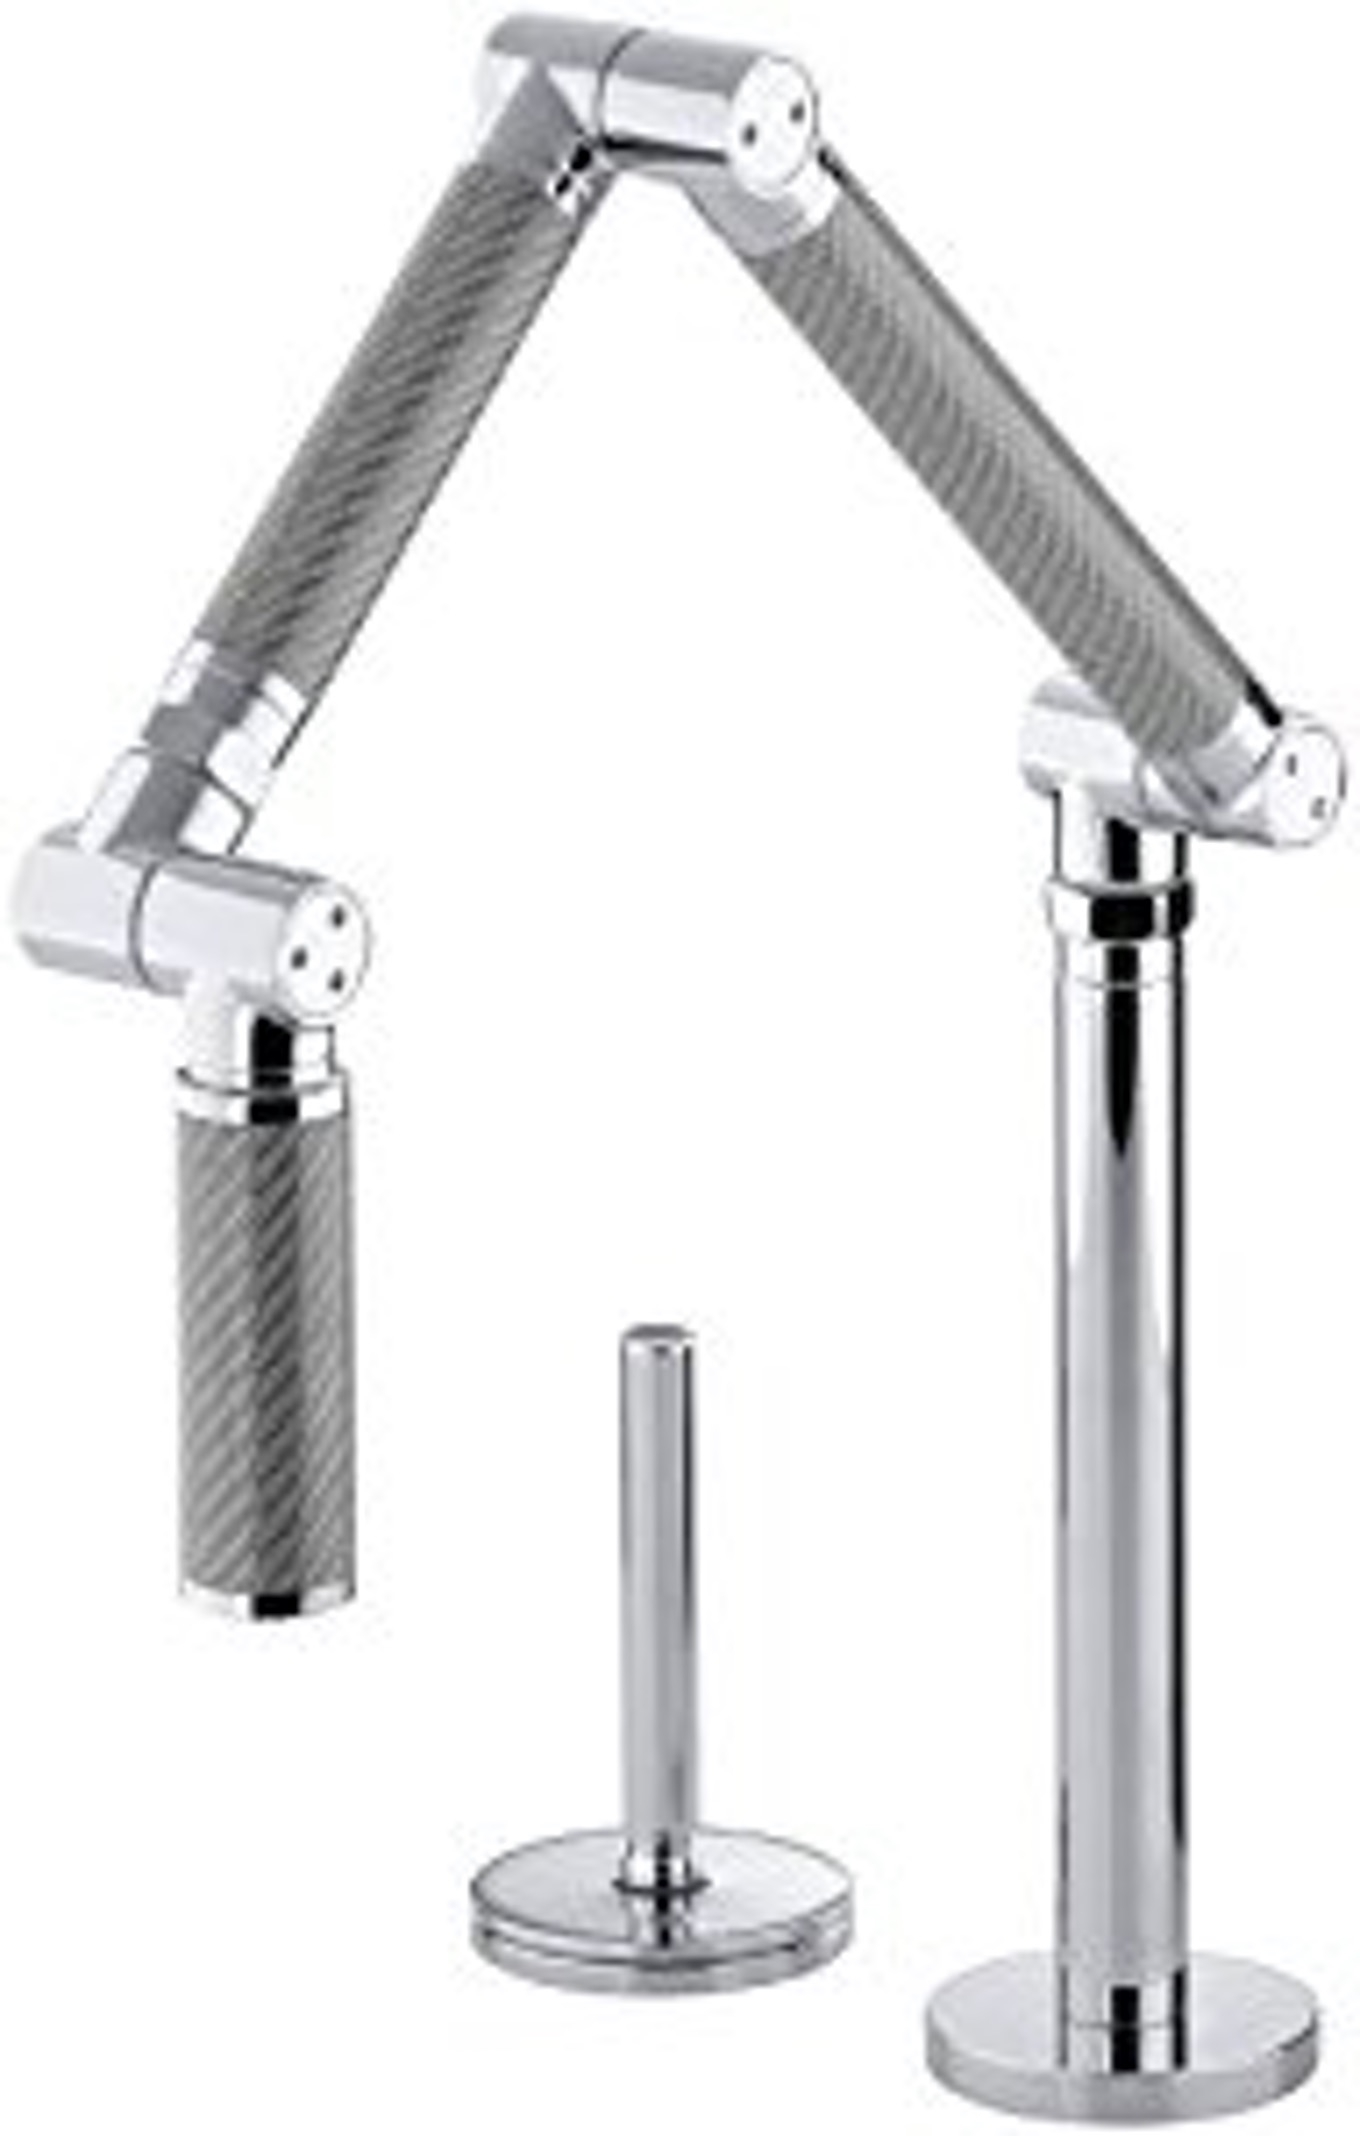 Ideas, articulating kitchen faucet kenangorgun intended for dimensions 1360 x 2136  .